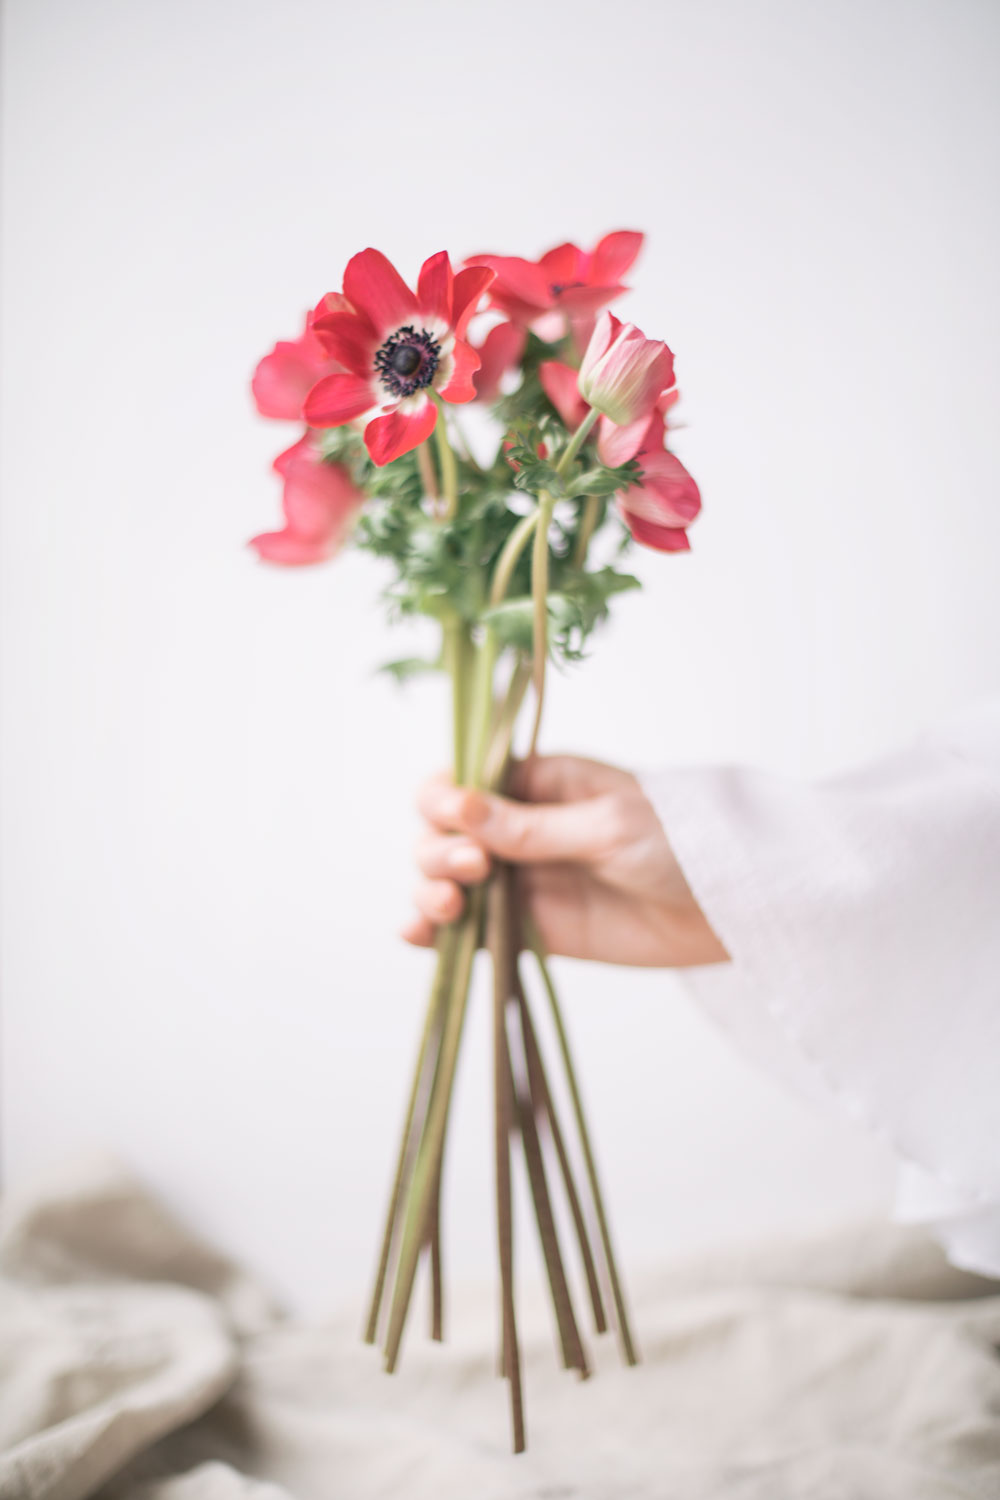 5 Flowers To Give For Valentines Day That Arent Roses The